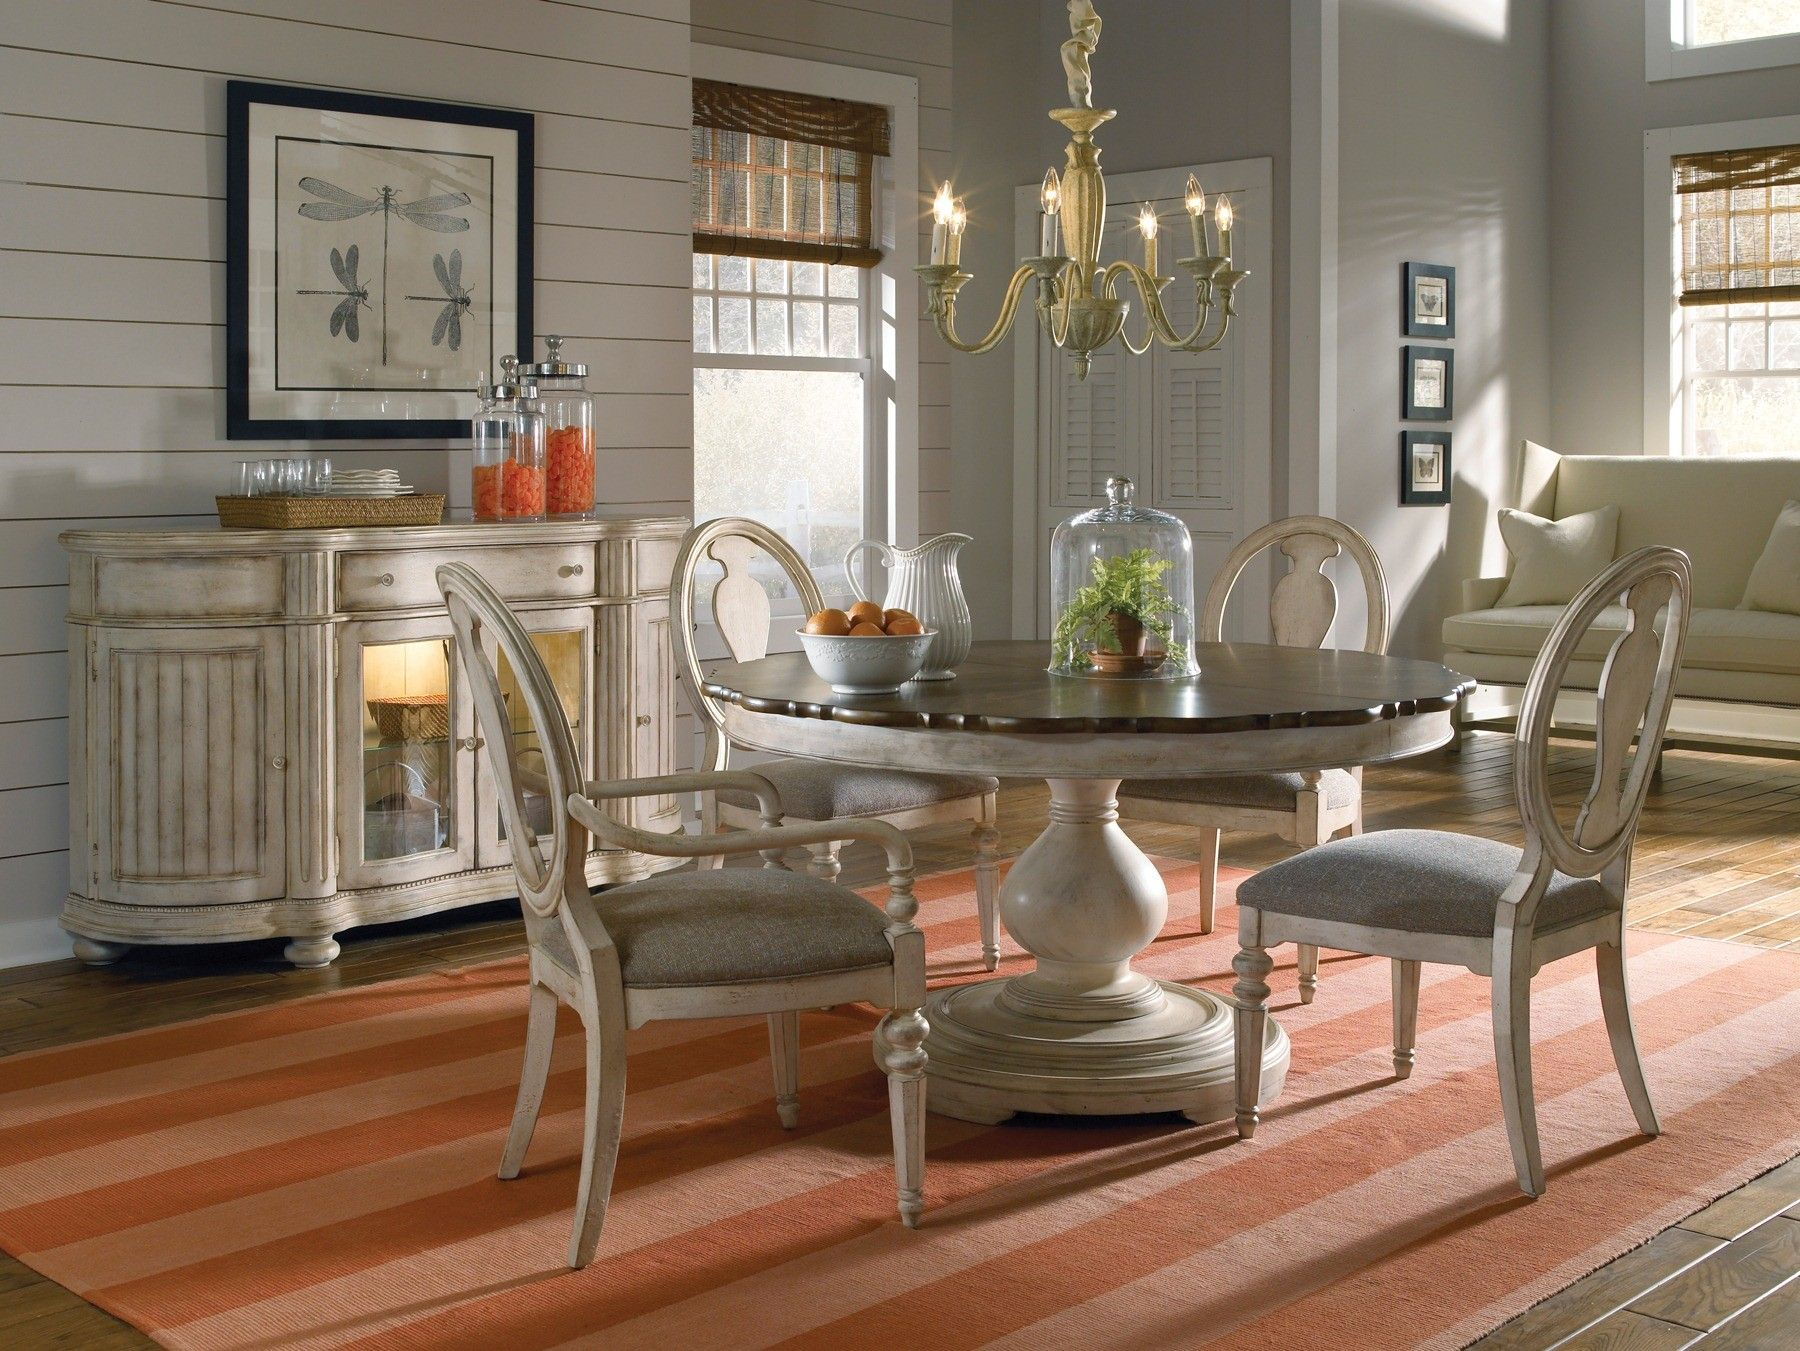 Oldstylecreamdiningsetrounddiningroomtablesetssmall Entrancing Cream Dining Room Furniture Design Ideas